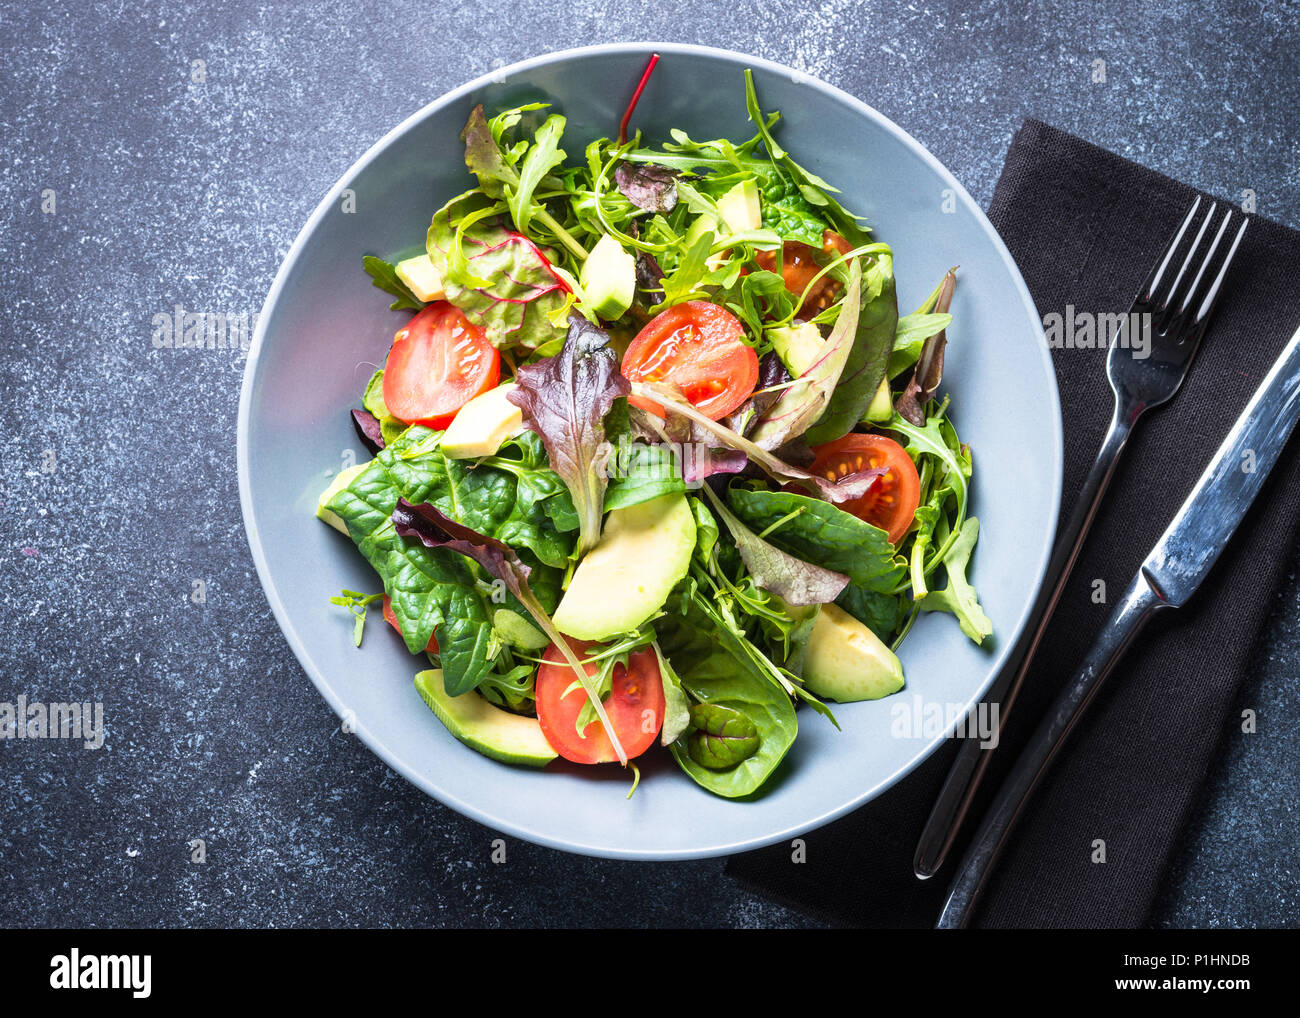 Fresh green salad with mixed green leaves, tomatoes and avocado on dark stone table. Clean eating and diet food. Top view. Stock Photo